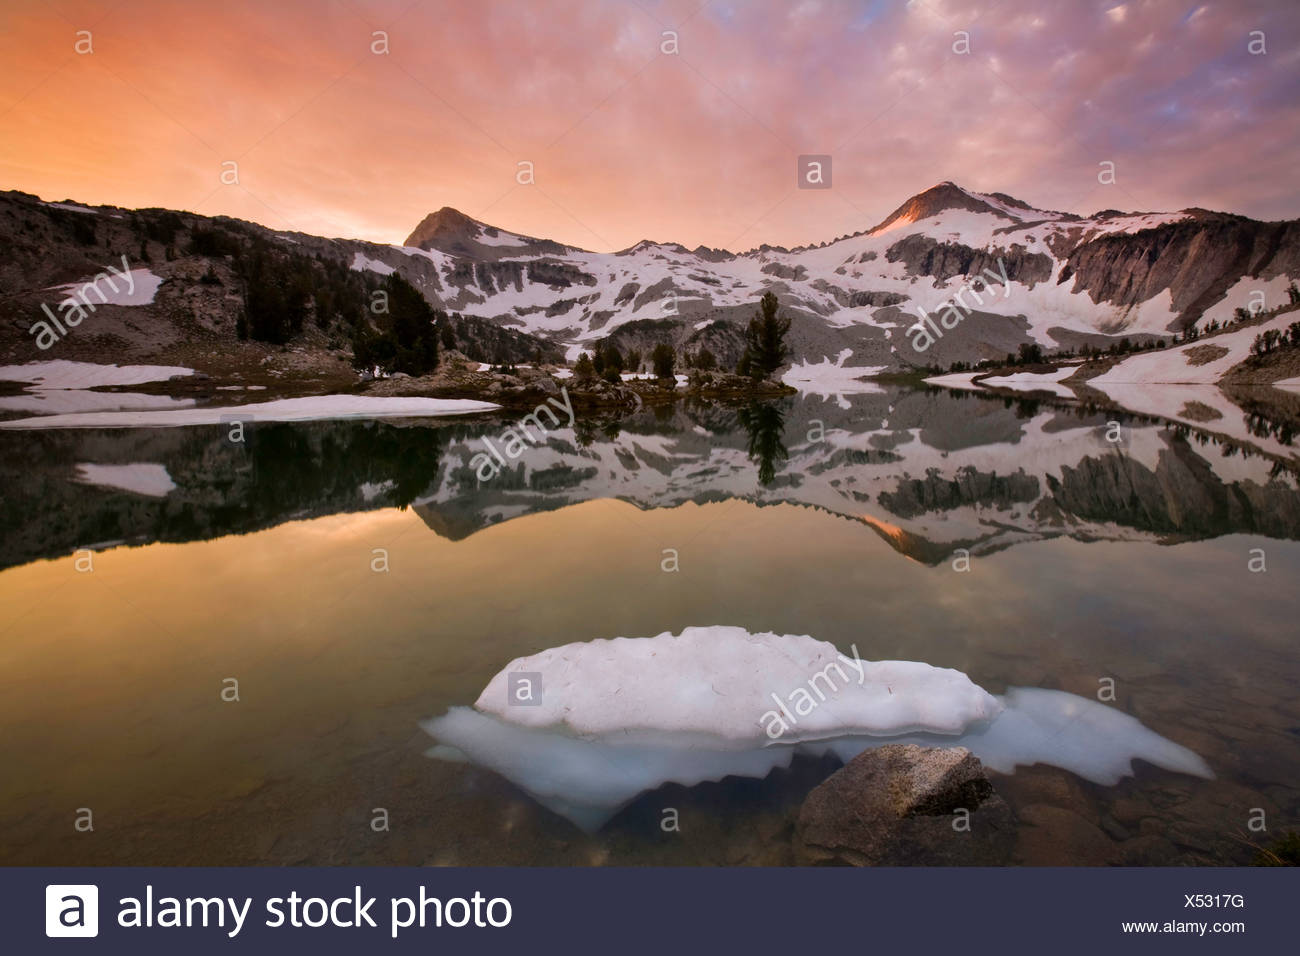 Sunset at Glacier Lake, Glacier Peak and Eagle Cap Peak in the Eagle Cap Wilderness of the Wallowa Mountains, Oregon. USA - Stock Image